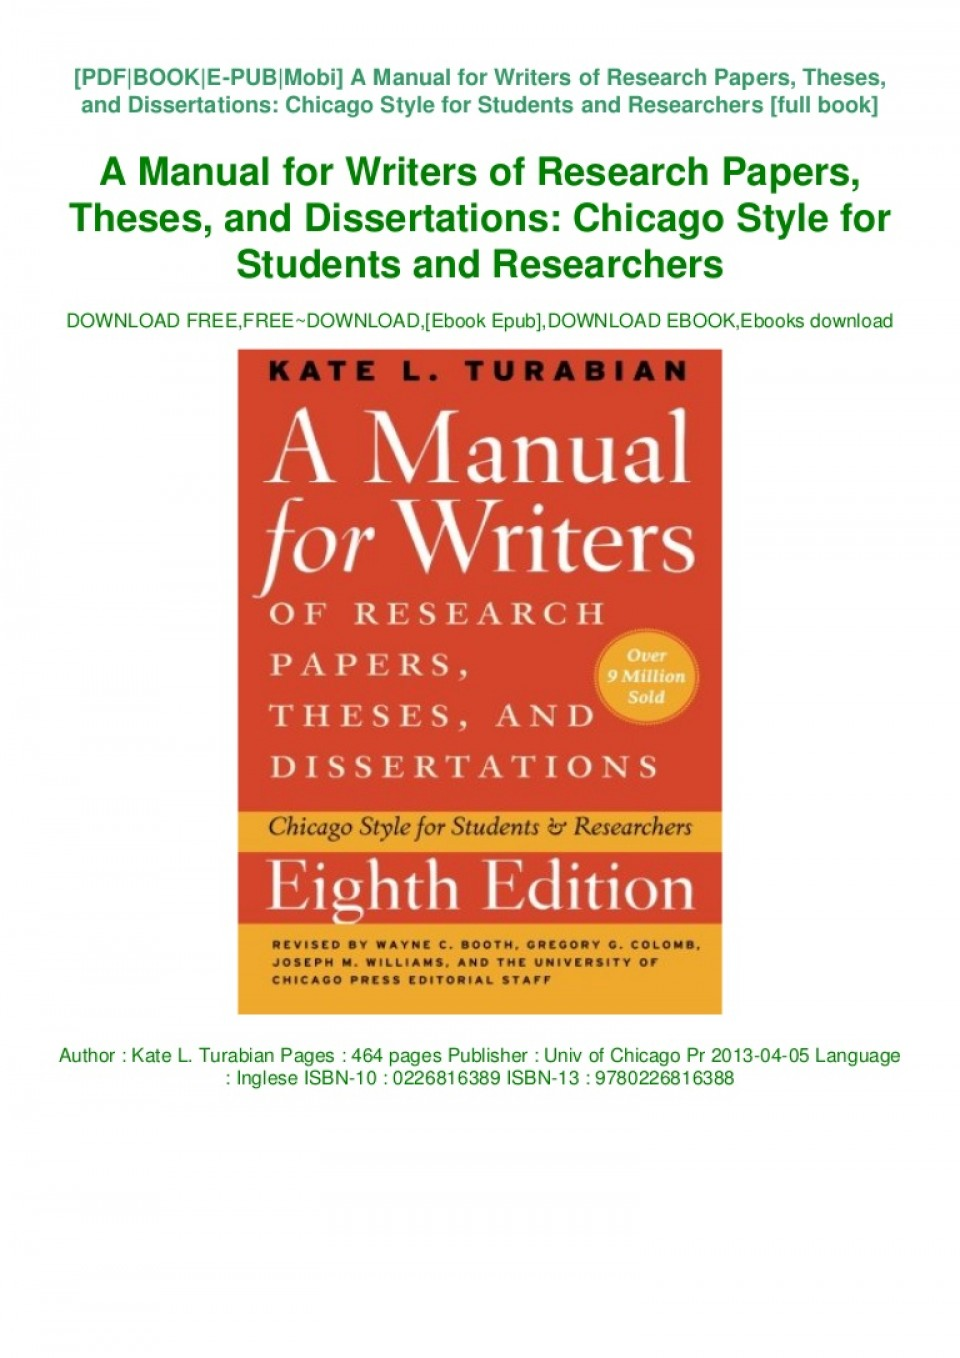 005 Manual For Writers Of Researchs Theses And Dissertations Book Thumbnail Magnificent Research Papers A Amazon 9th Edition Pdf 8th 13 960